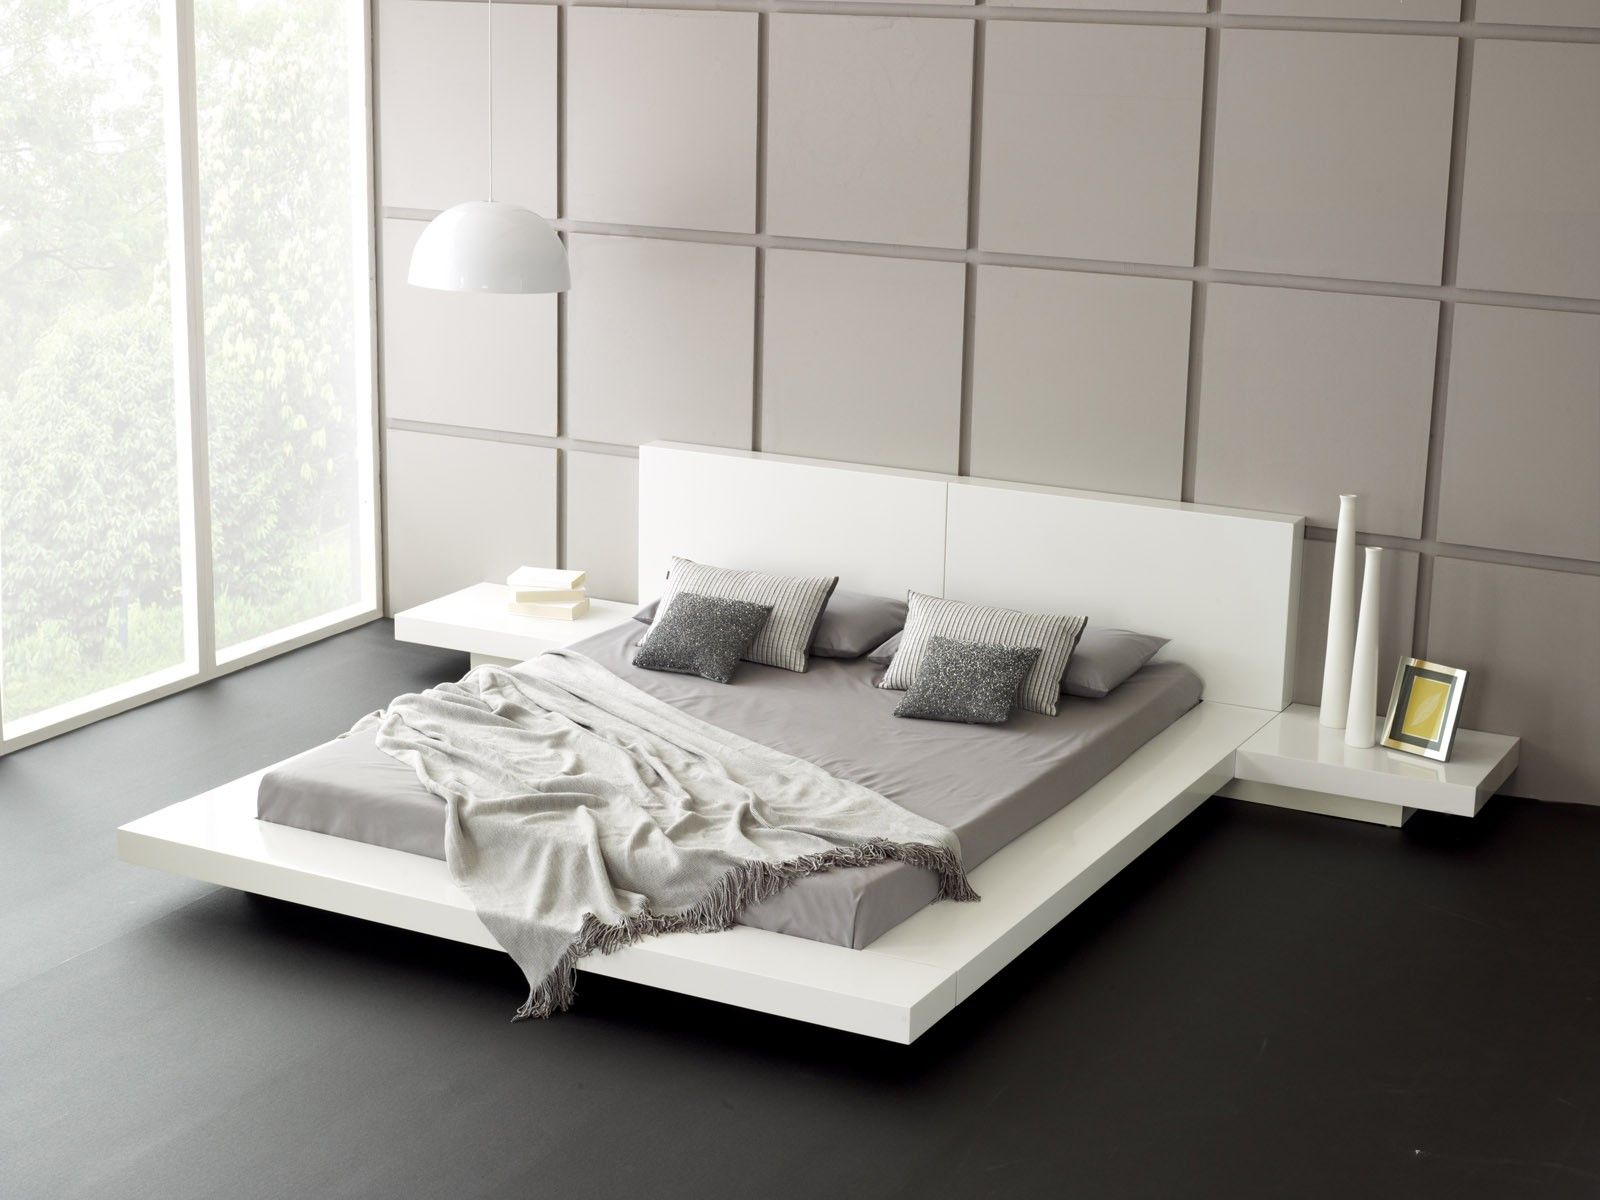 luxurious modern master bedroom with white wooden bed frames low profile queen bed as well as